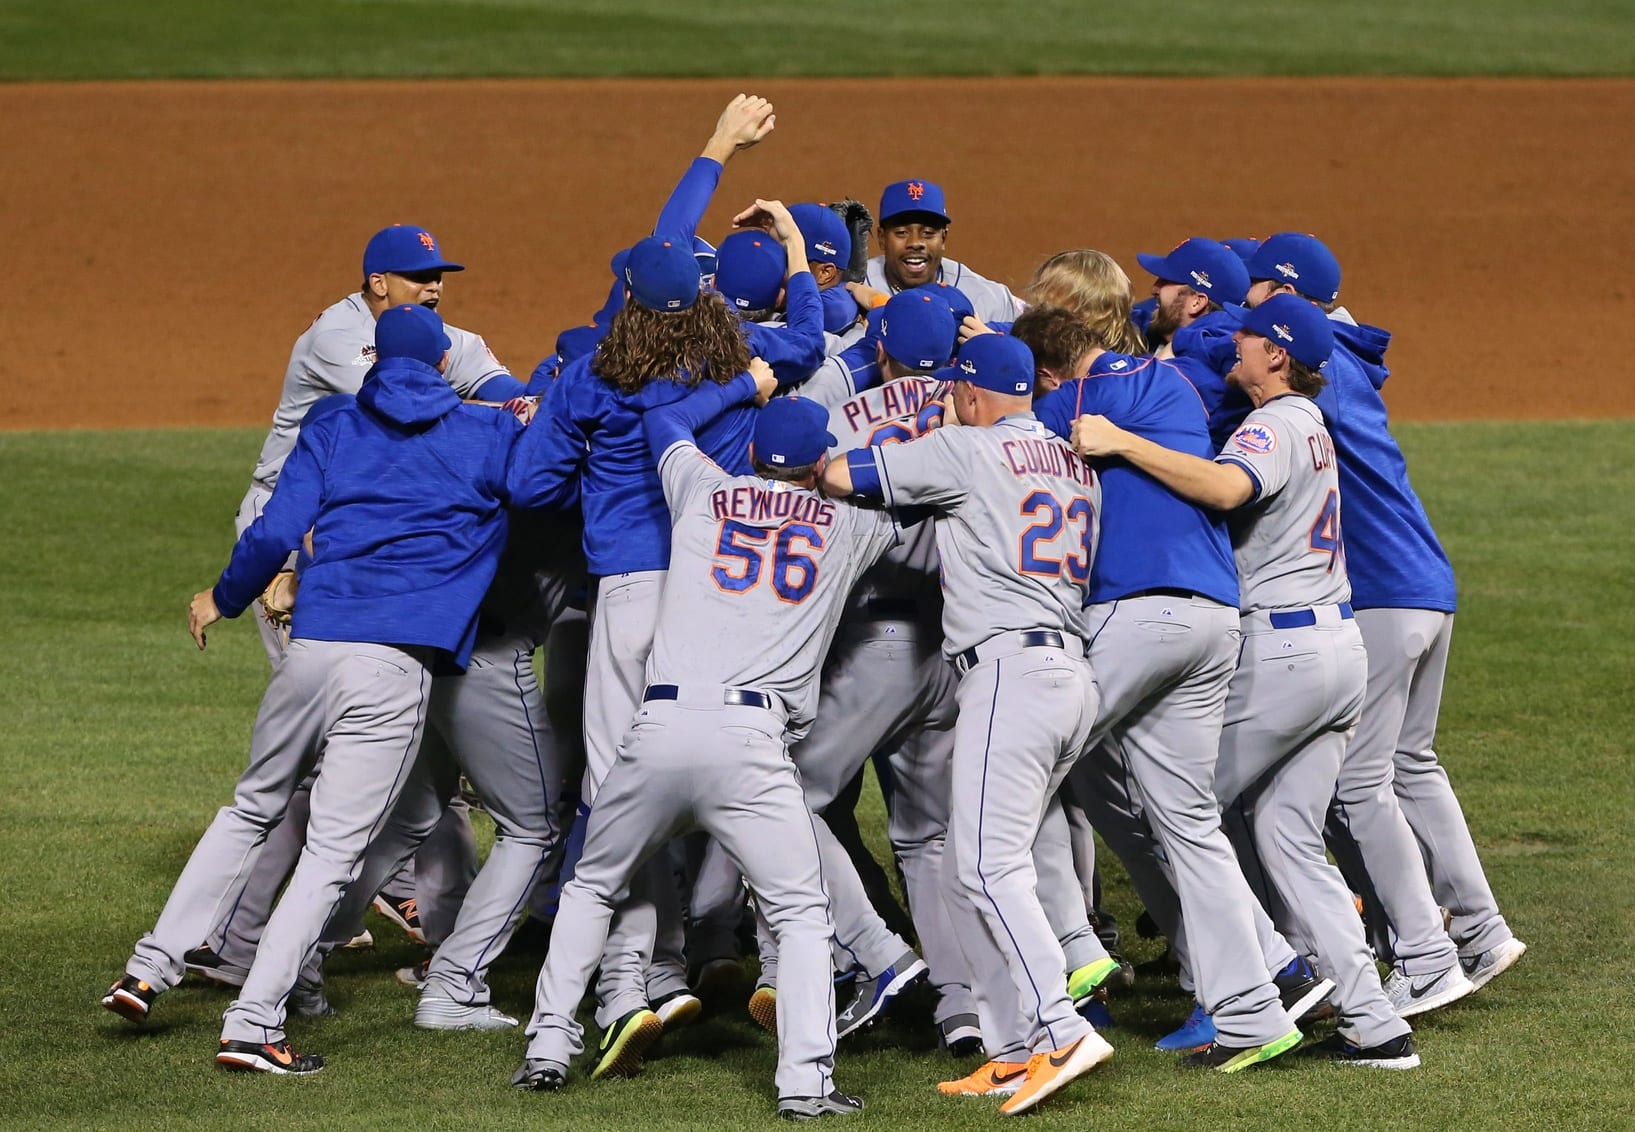 Kansas City Royals, New York Mets Set To Meet In 2015 World Series